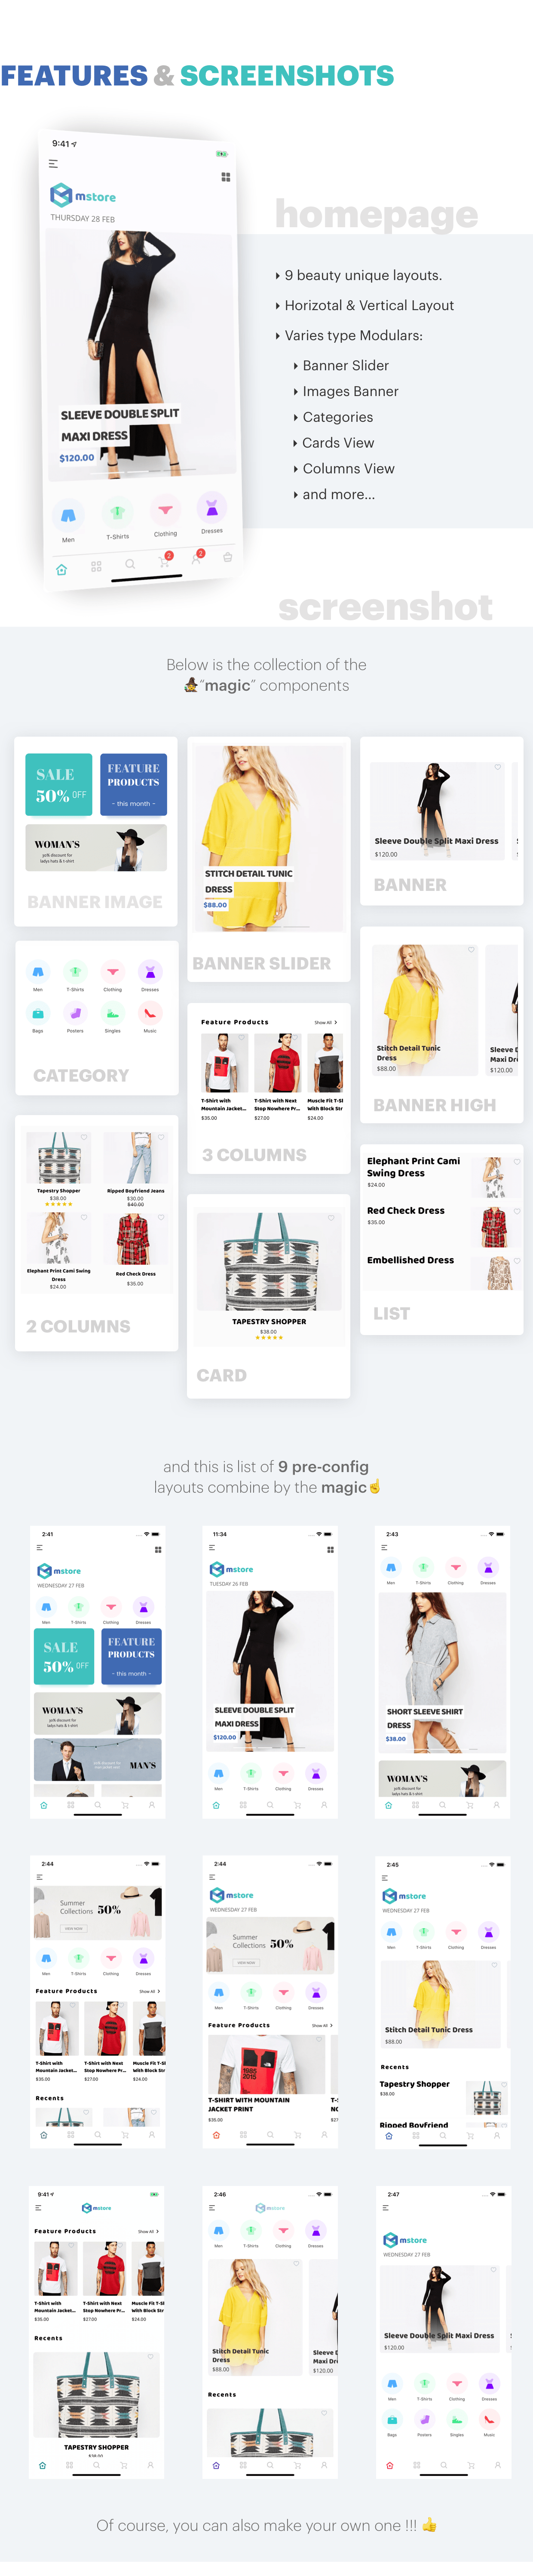 Mstore Expo - Complete React Native template for WooCommerce - 10